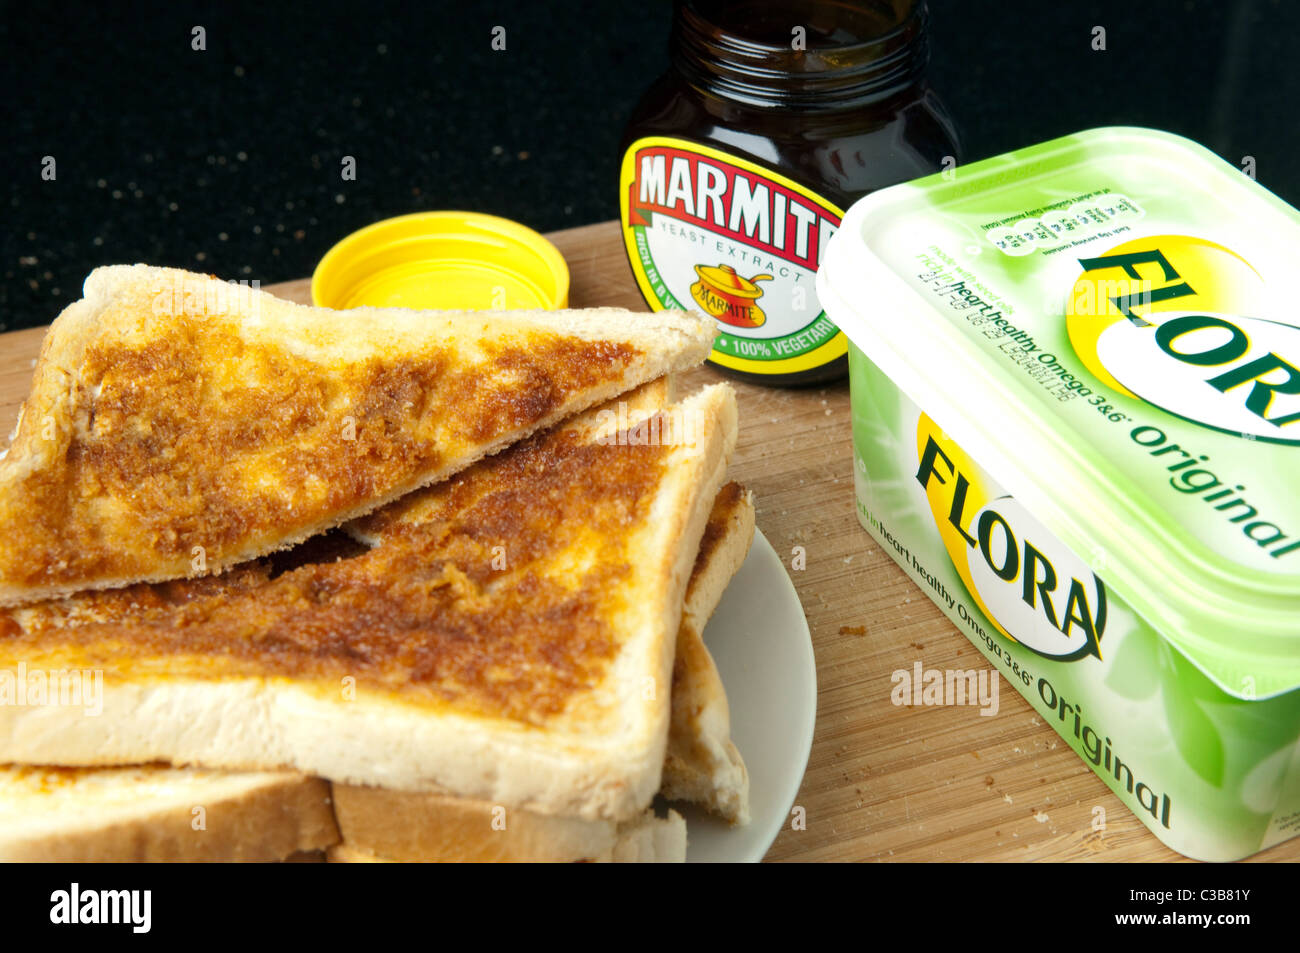 Illustrative image of Marmite and Flora Original spread, two Unilever food products. - Stock Image